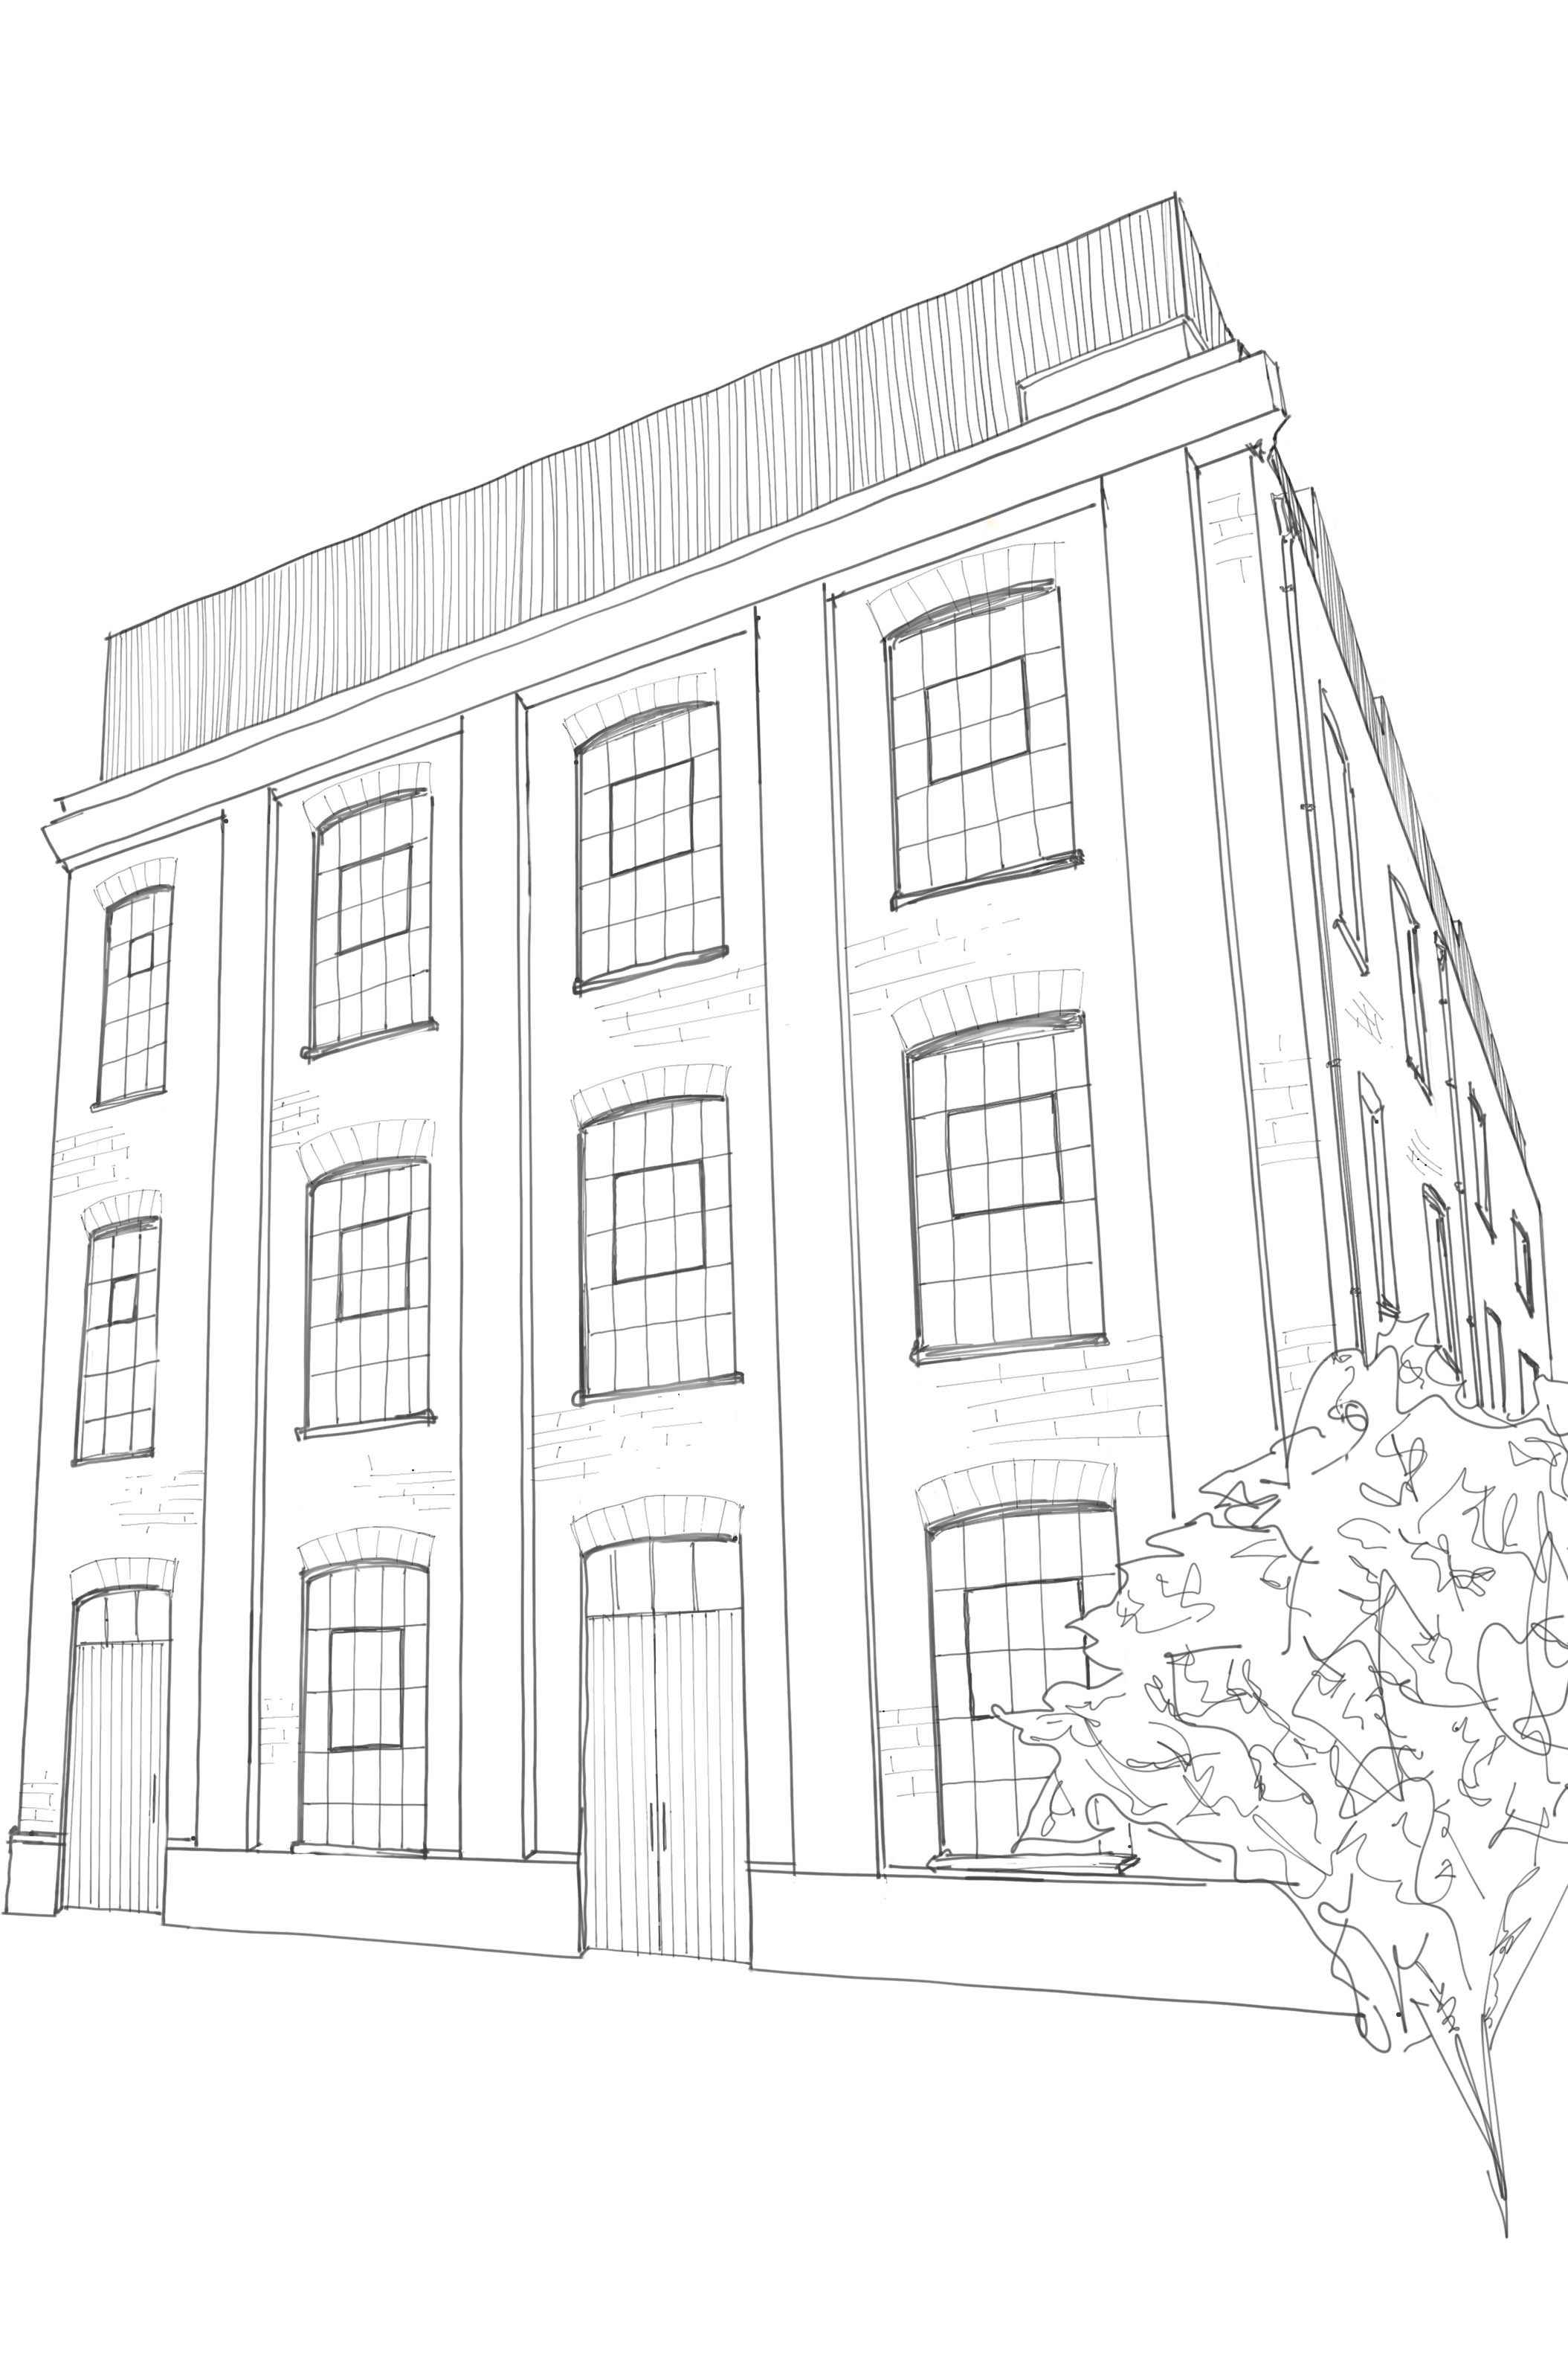 HACKNEY - MIXED USE DEVELOPMENT, 8 STUDIOS AND 3 RESIDENTIAL APARTMENTS  COMPLETION DUE 2019